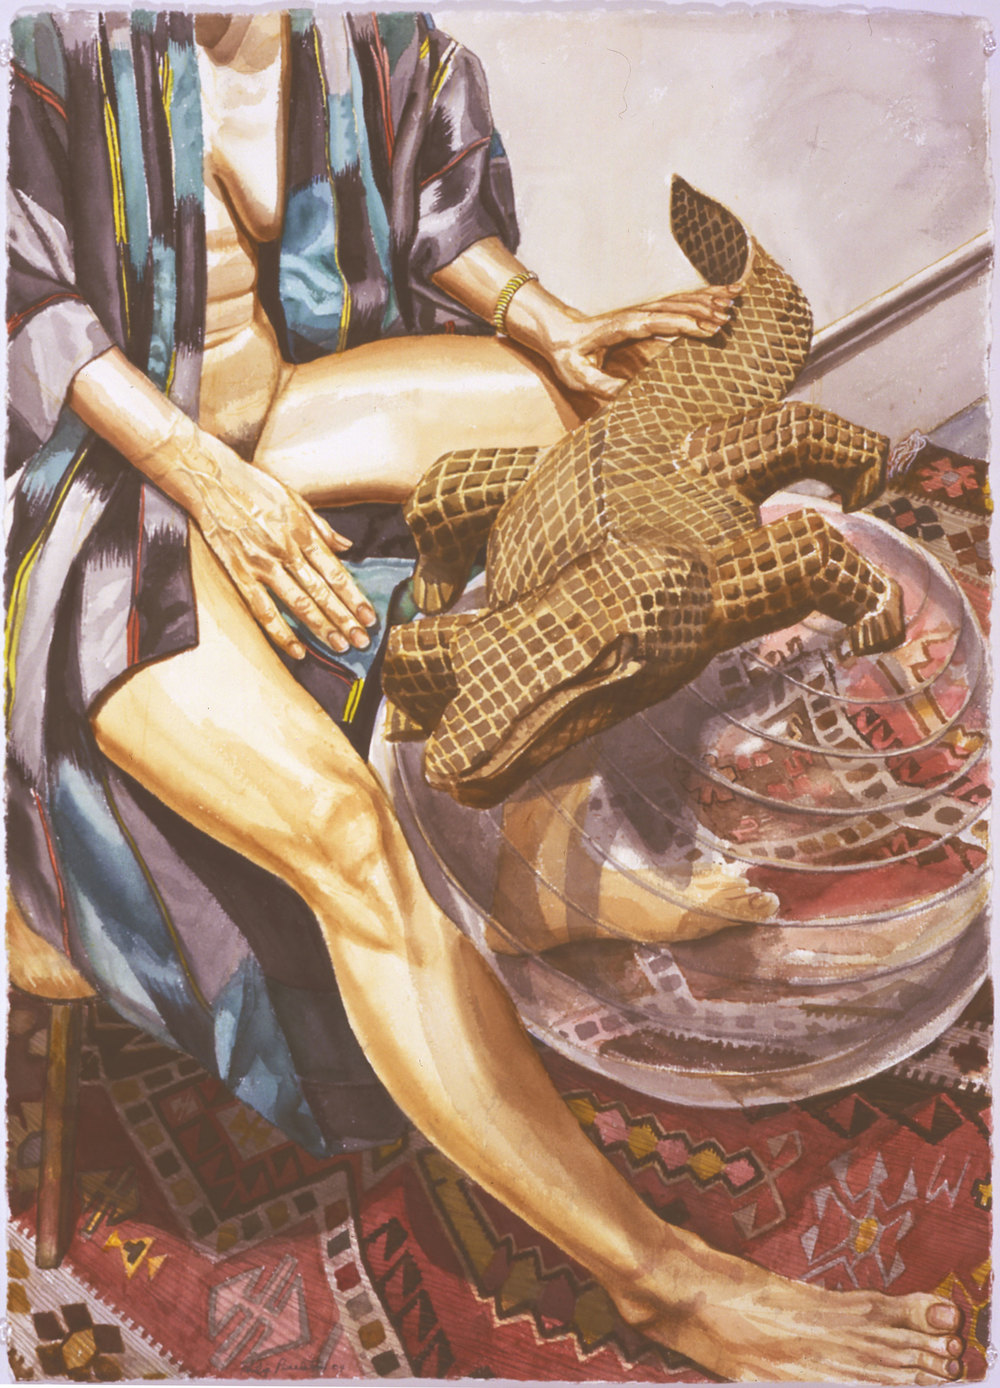 MODEL WITH CARVED WOODEN LIZARD ON EXERCISE BALL , 2004 Watercolor on paper 41 1/4 x 29 1/2 inches